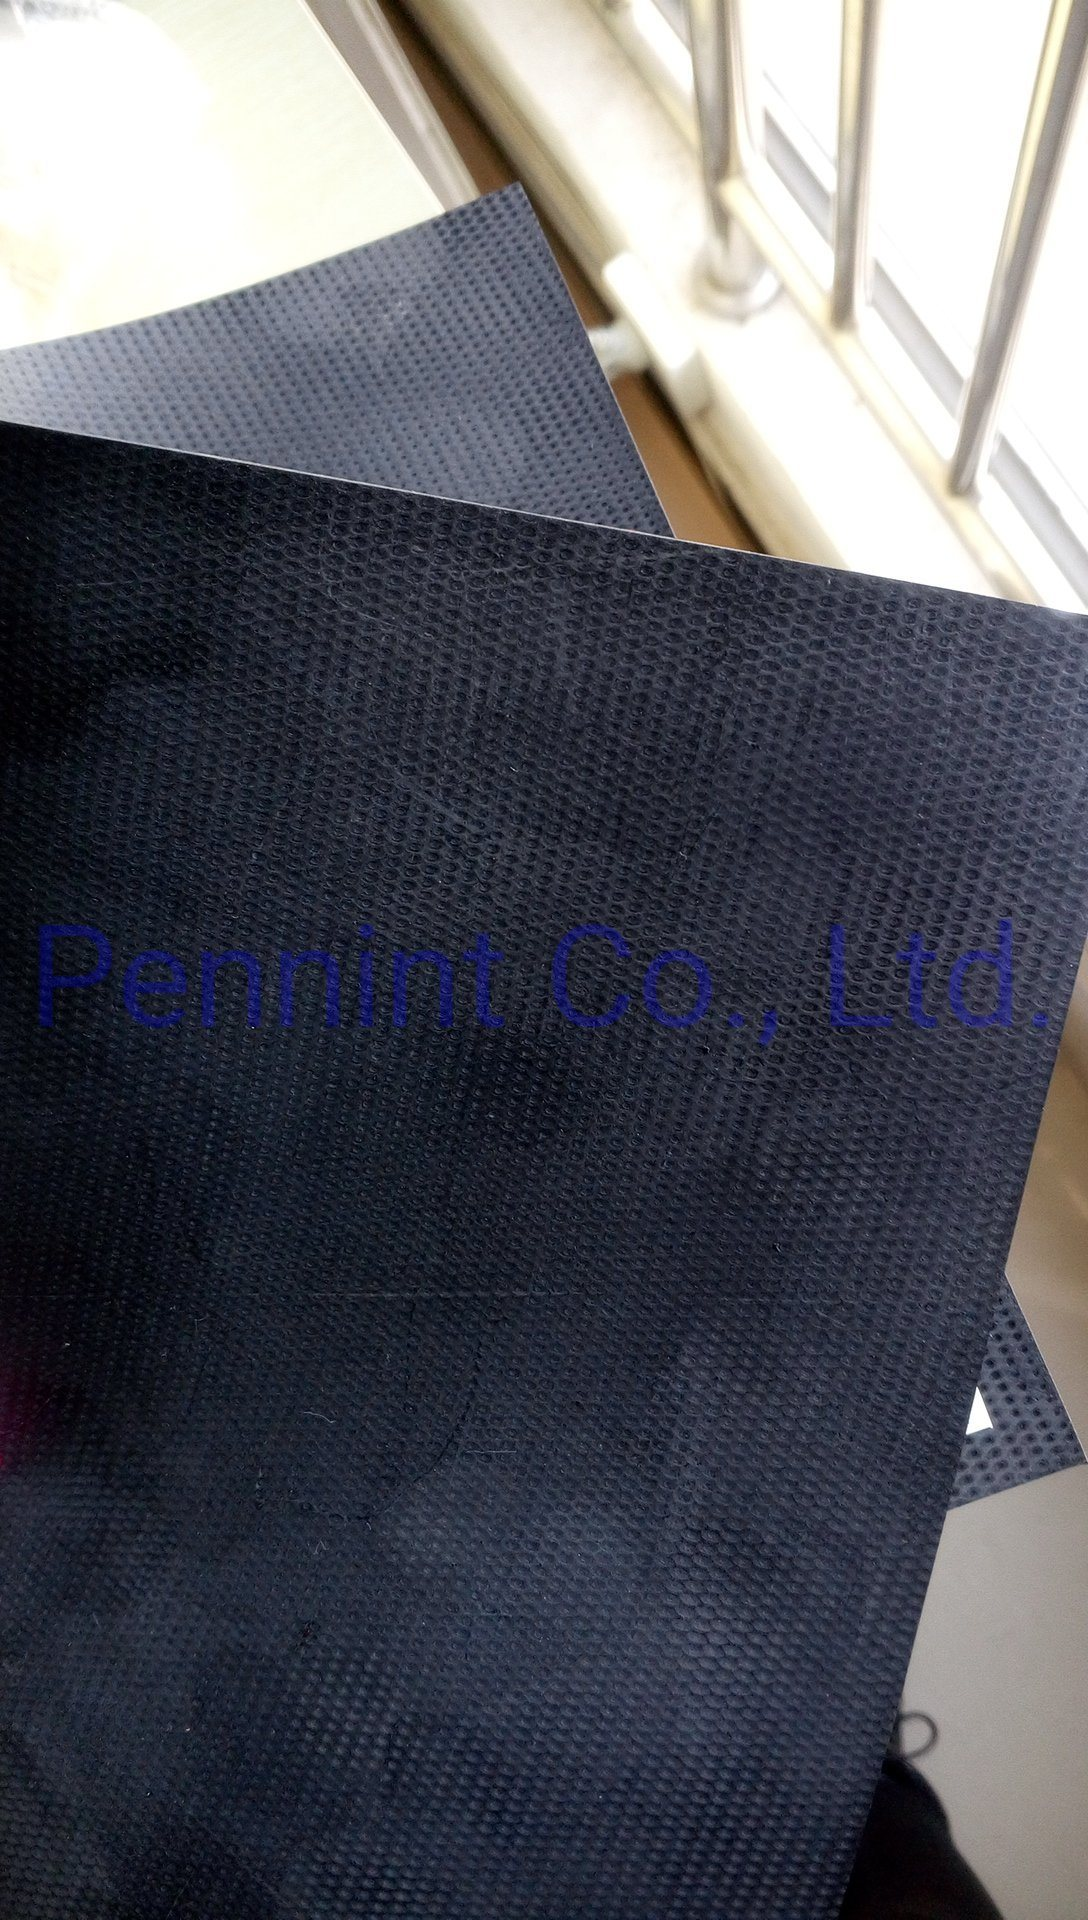 EPDM waterproofing and roofing membrane for PU adhesive